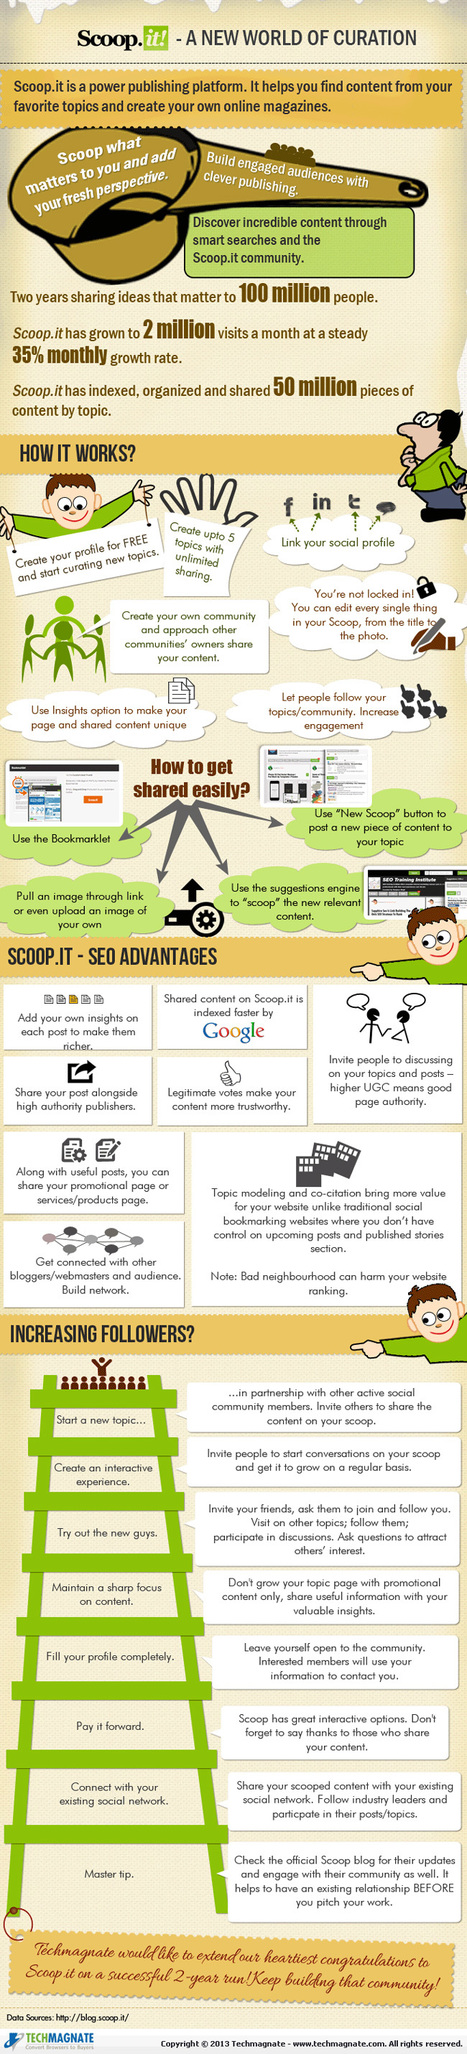 Scoop.It for SEO – A New World of Curation [Infographic] | Wepyirang | Scoop.it